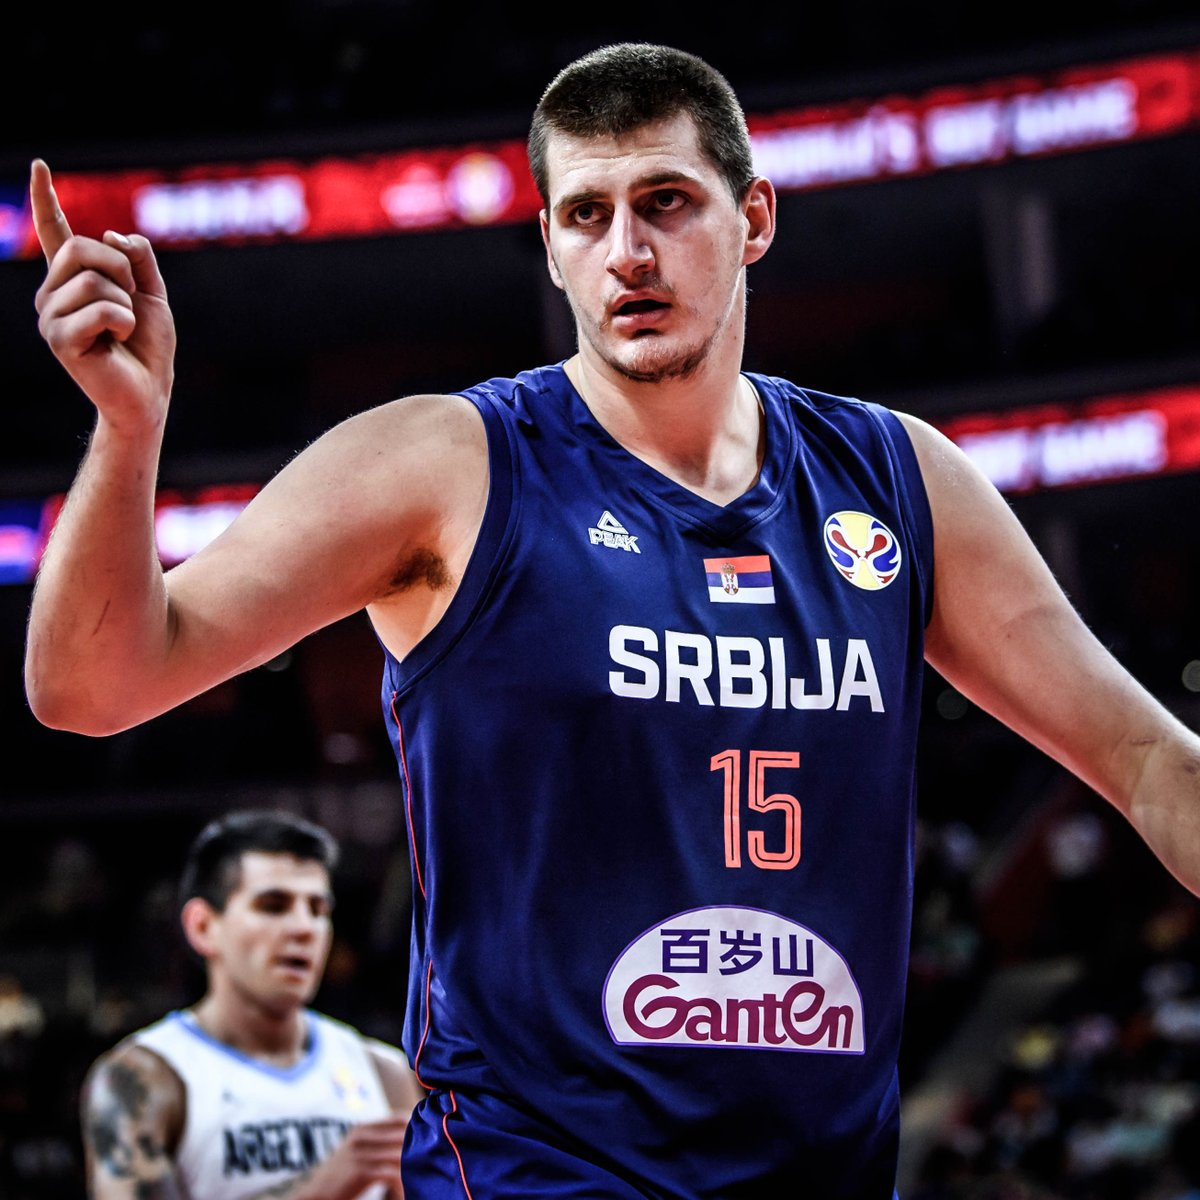 """We're going to learn from this. We're going to come back better.  We're one of the best teams in the world and we will show it again very soon.""  Nikola Jokić 